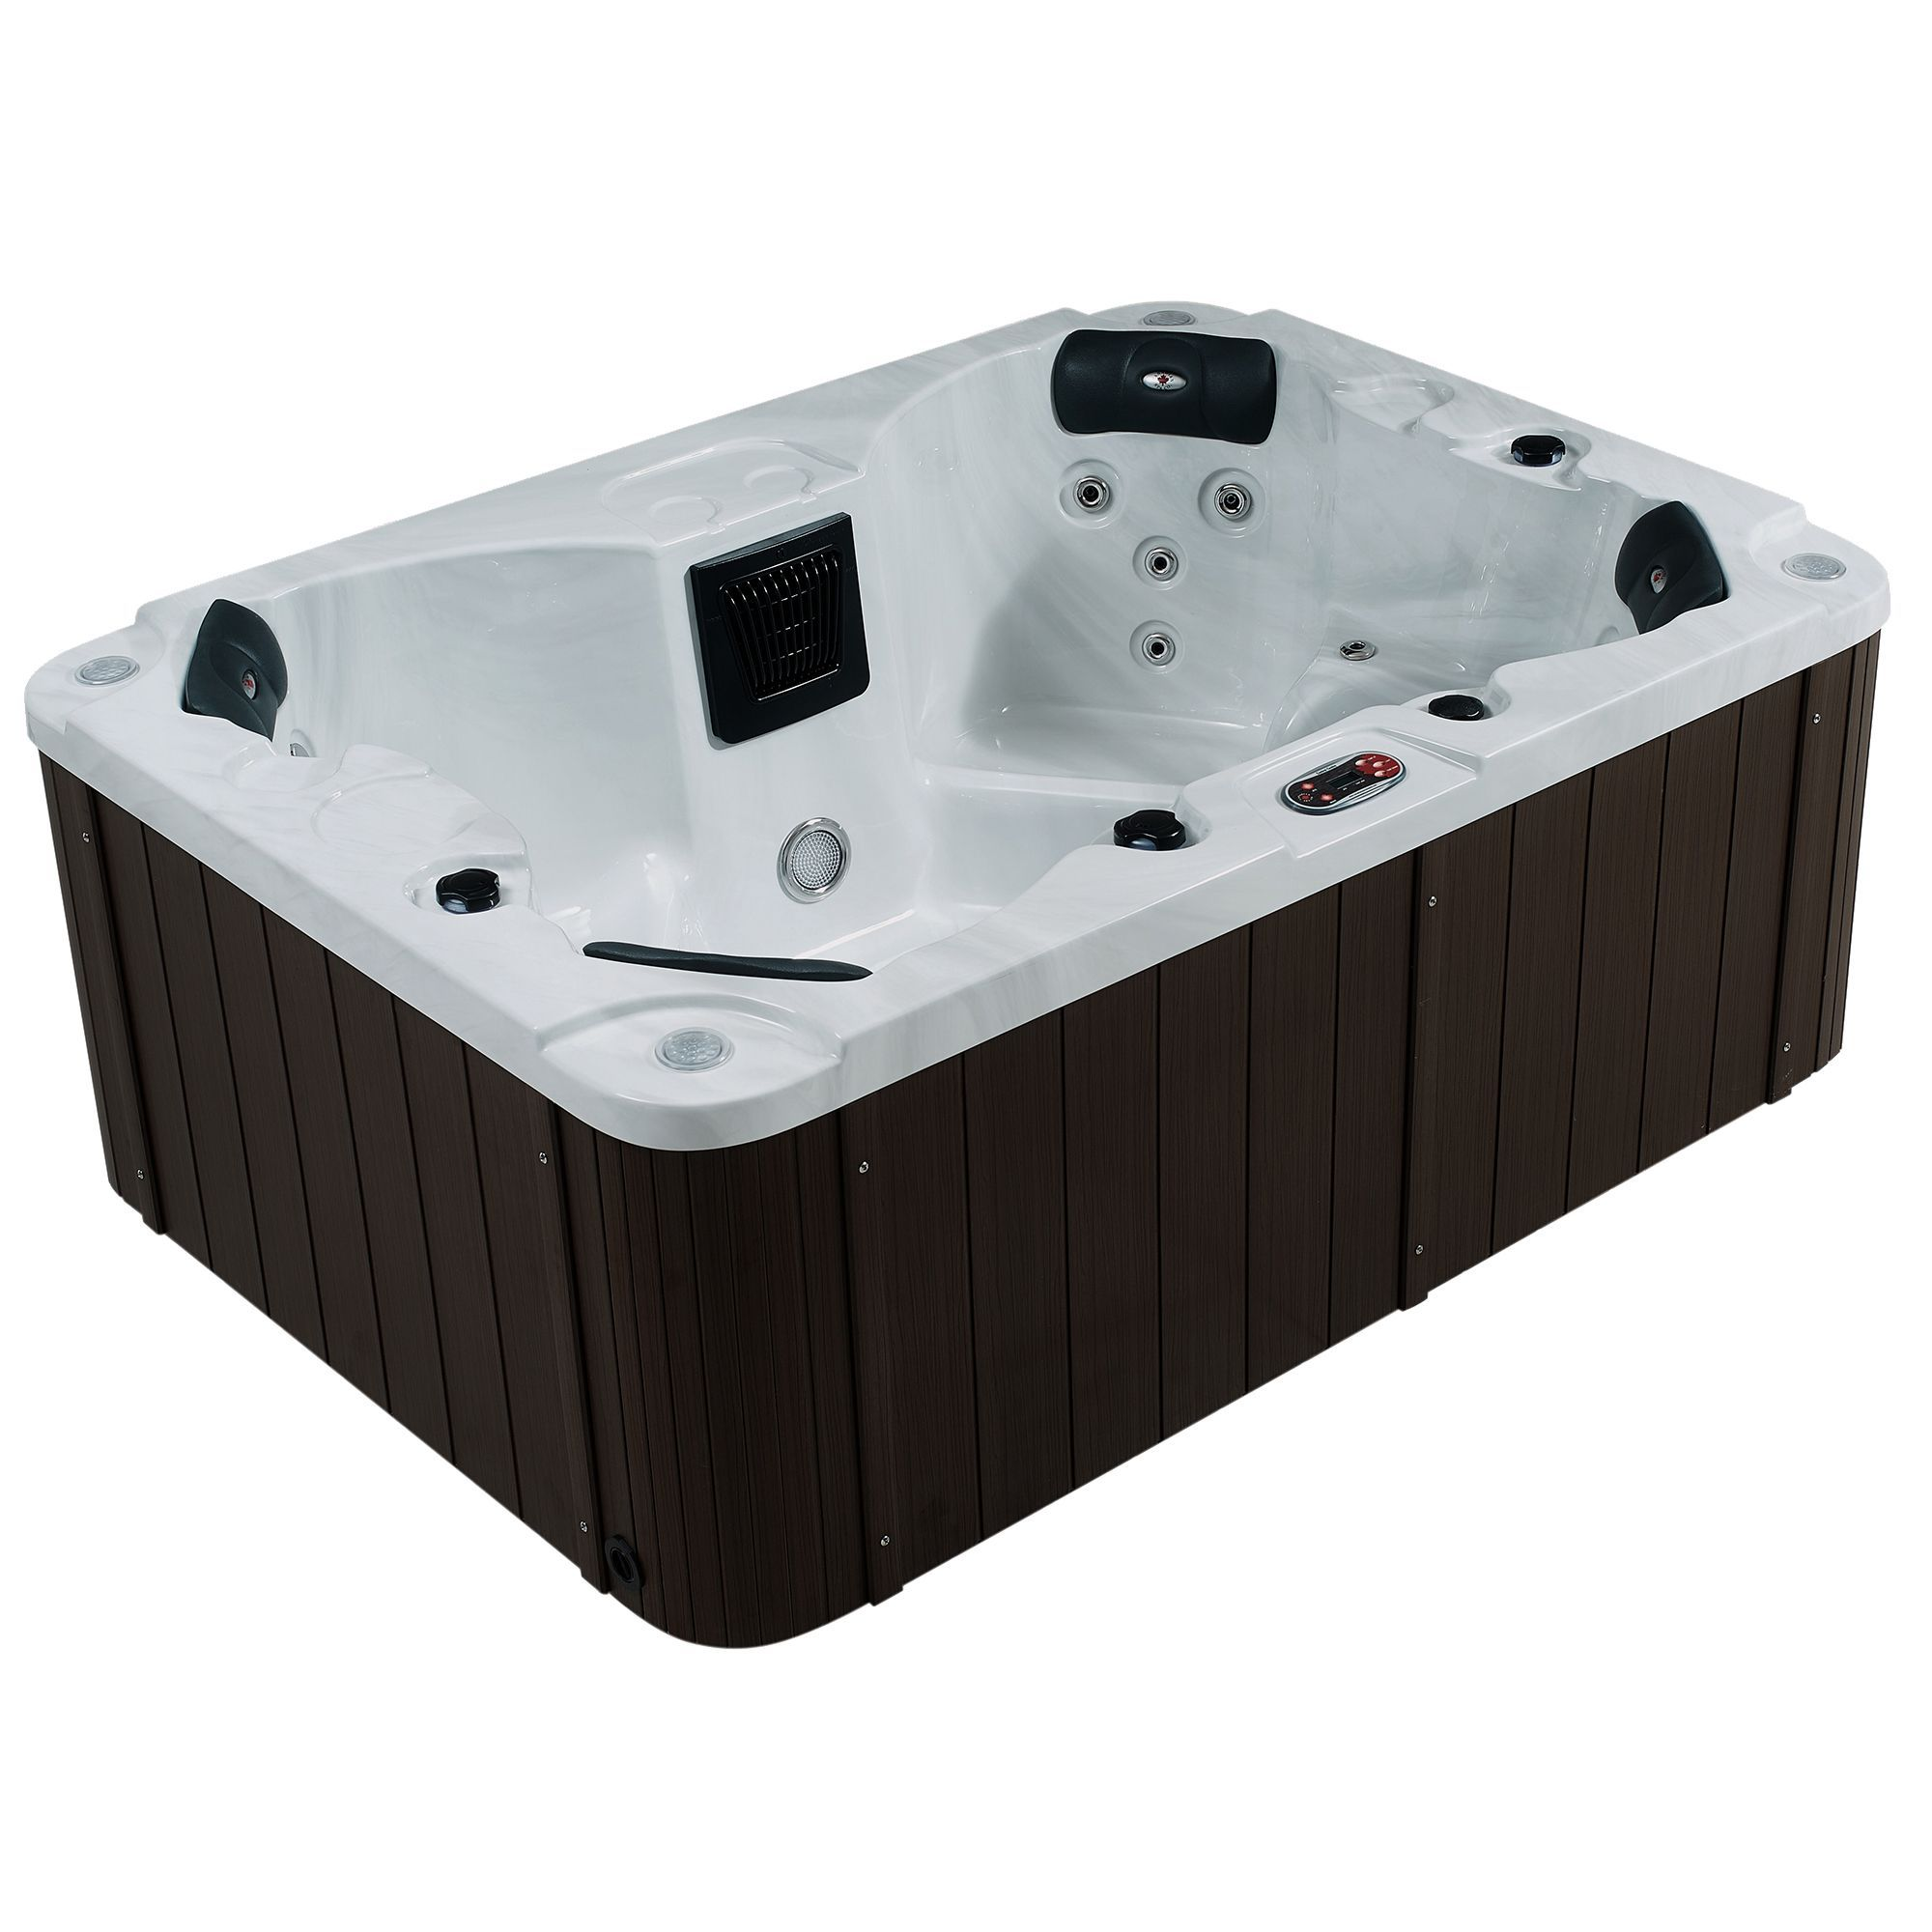 people massage to system product walmart for reviews saluspa light person paris with hot spa inflatable tub led airjet com portable